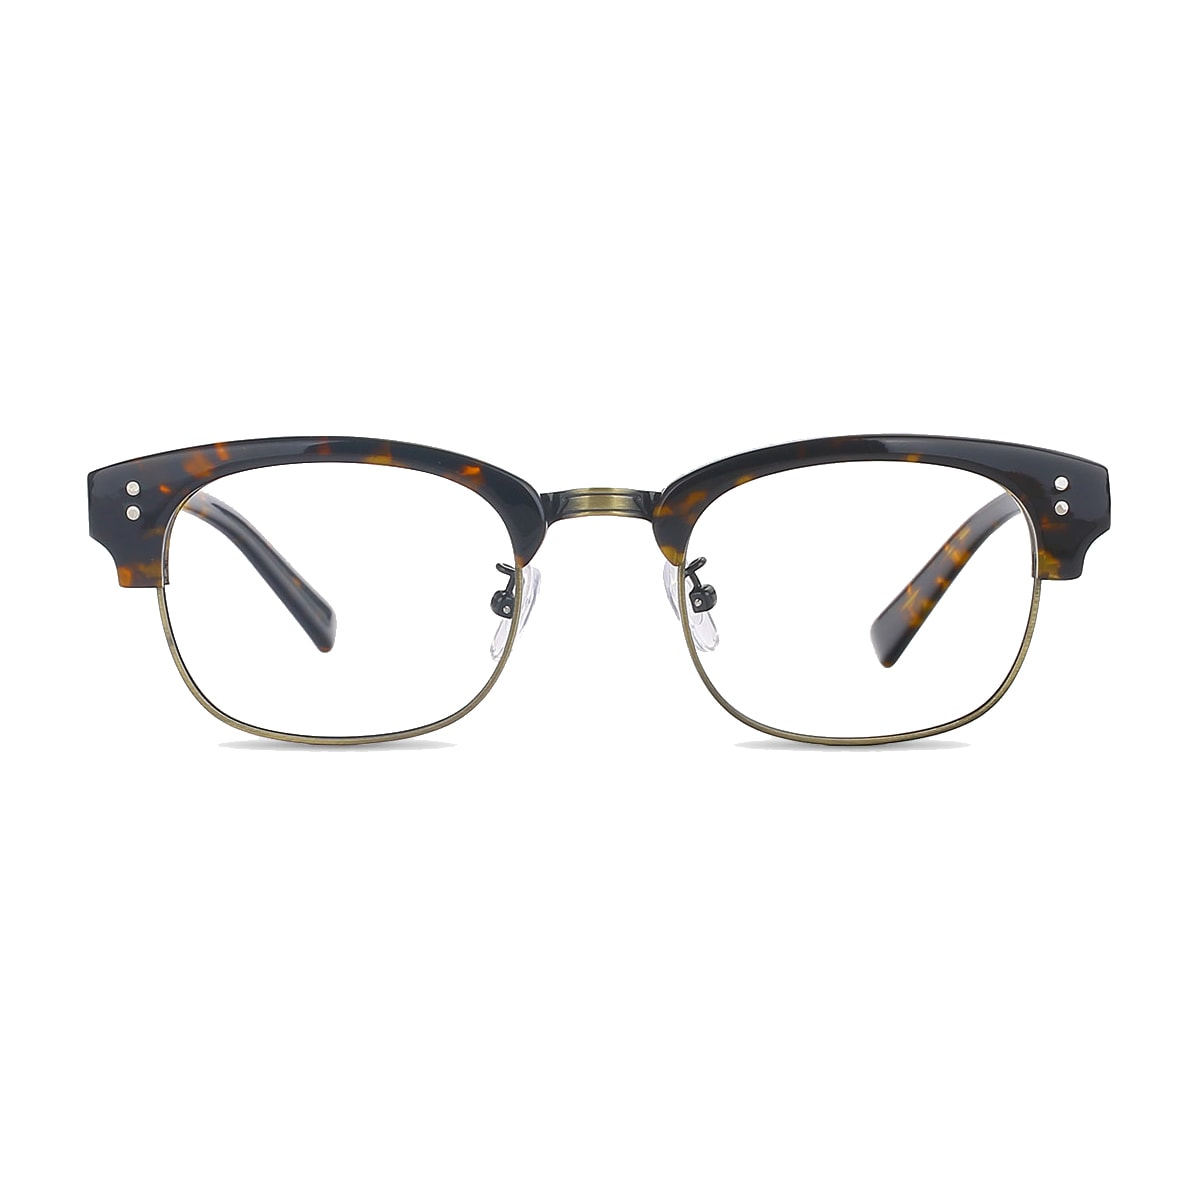 Yamibuy.com:Customer reviews:Moderns - Tortoiseshell (DL45020)